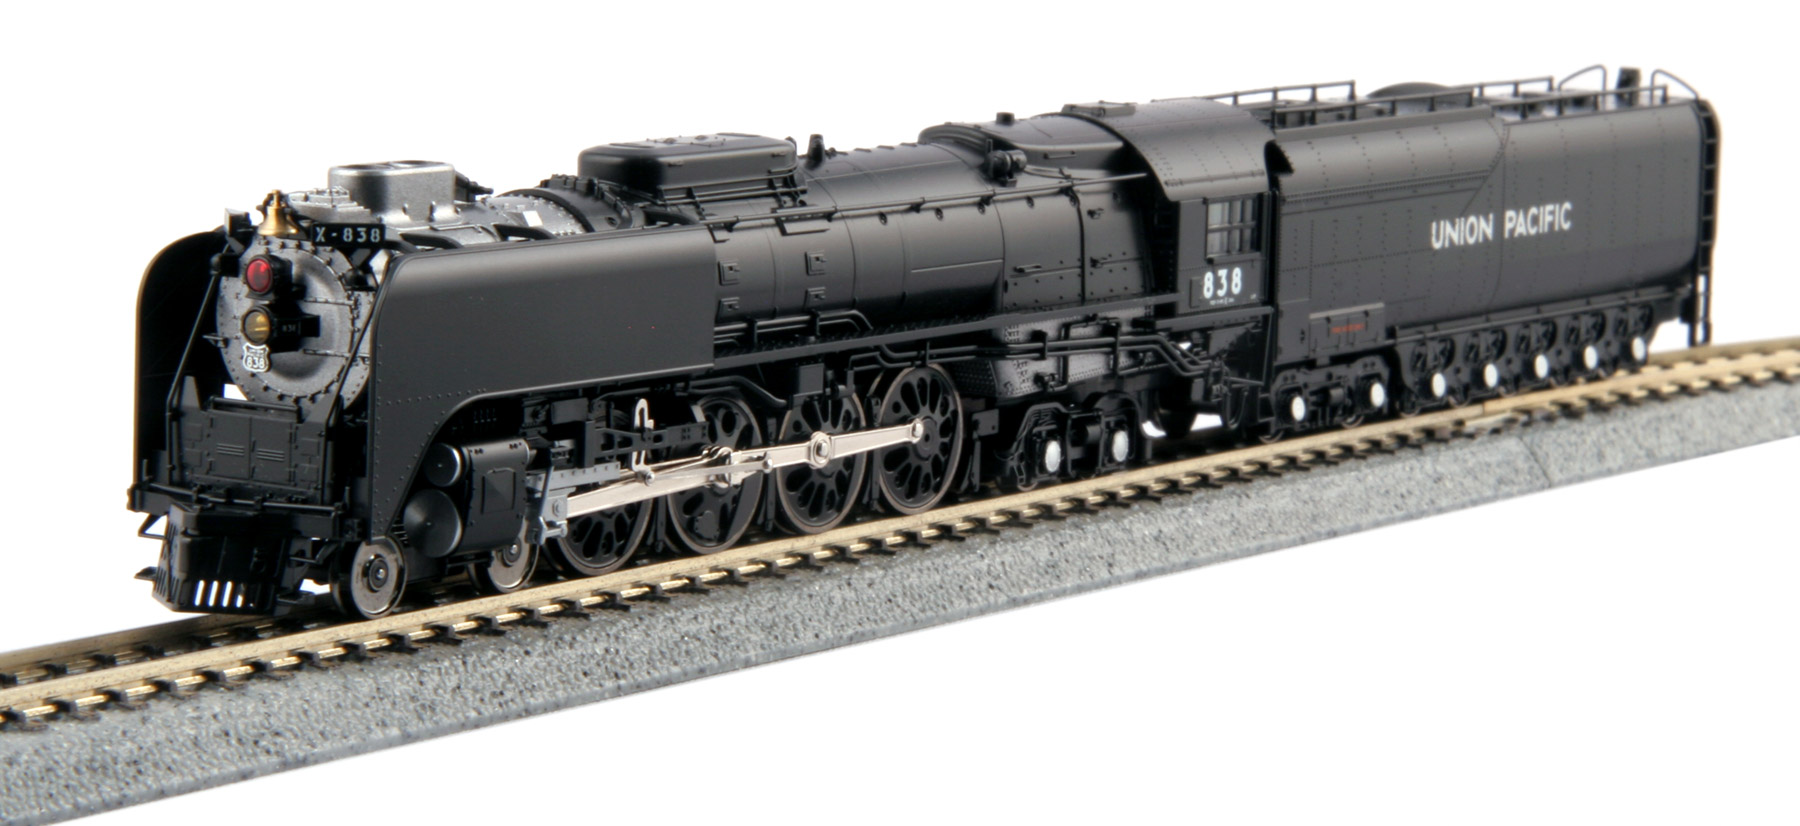 Kato N 4-8-4 FEF-3 Union Pacific #838 - Freight version